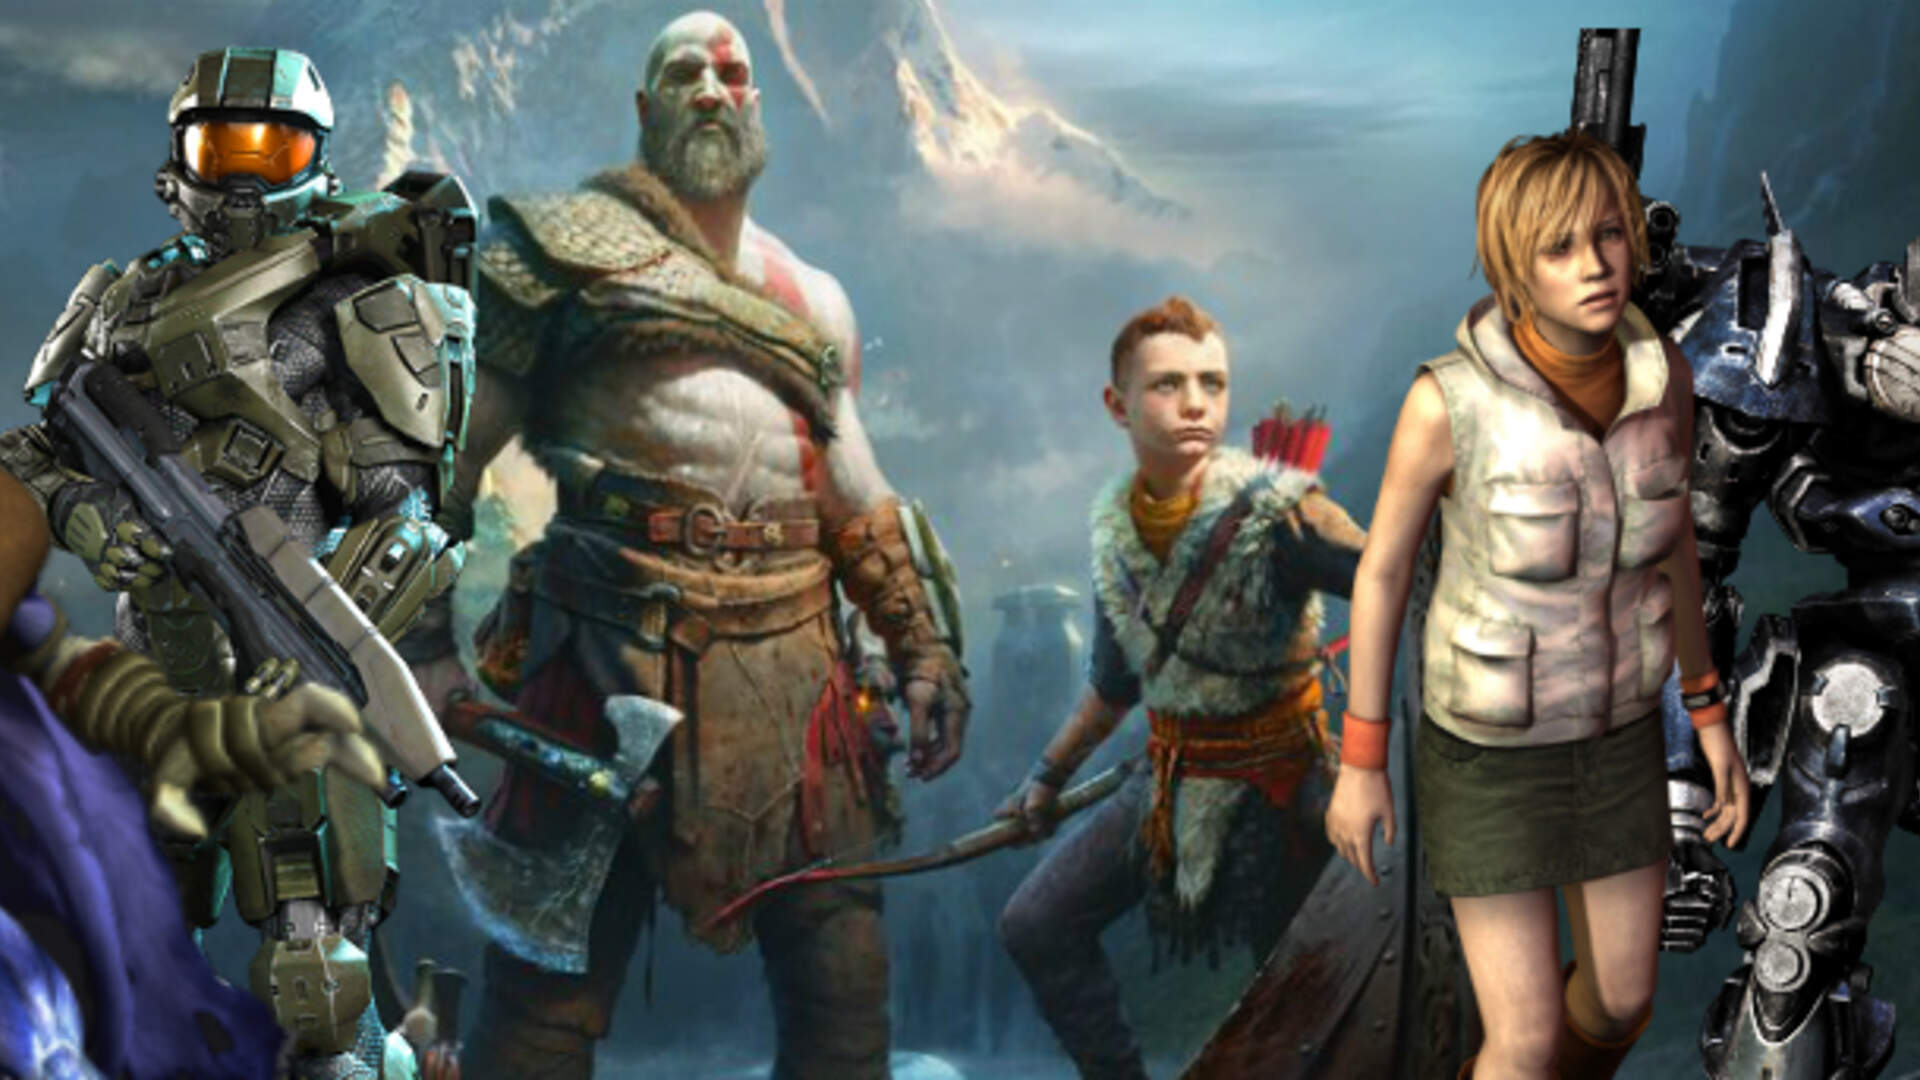 7 Games That Need The God of War Reboot Treatment